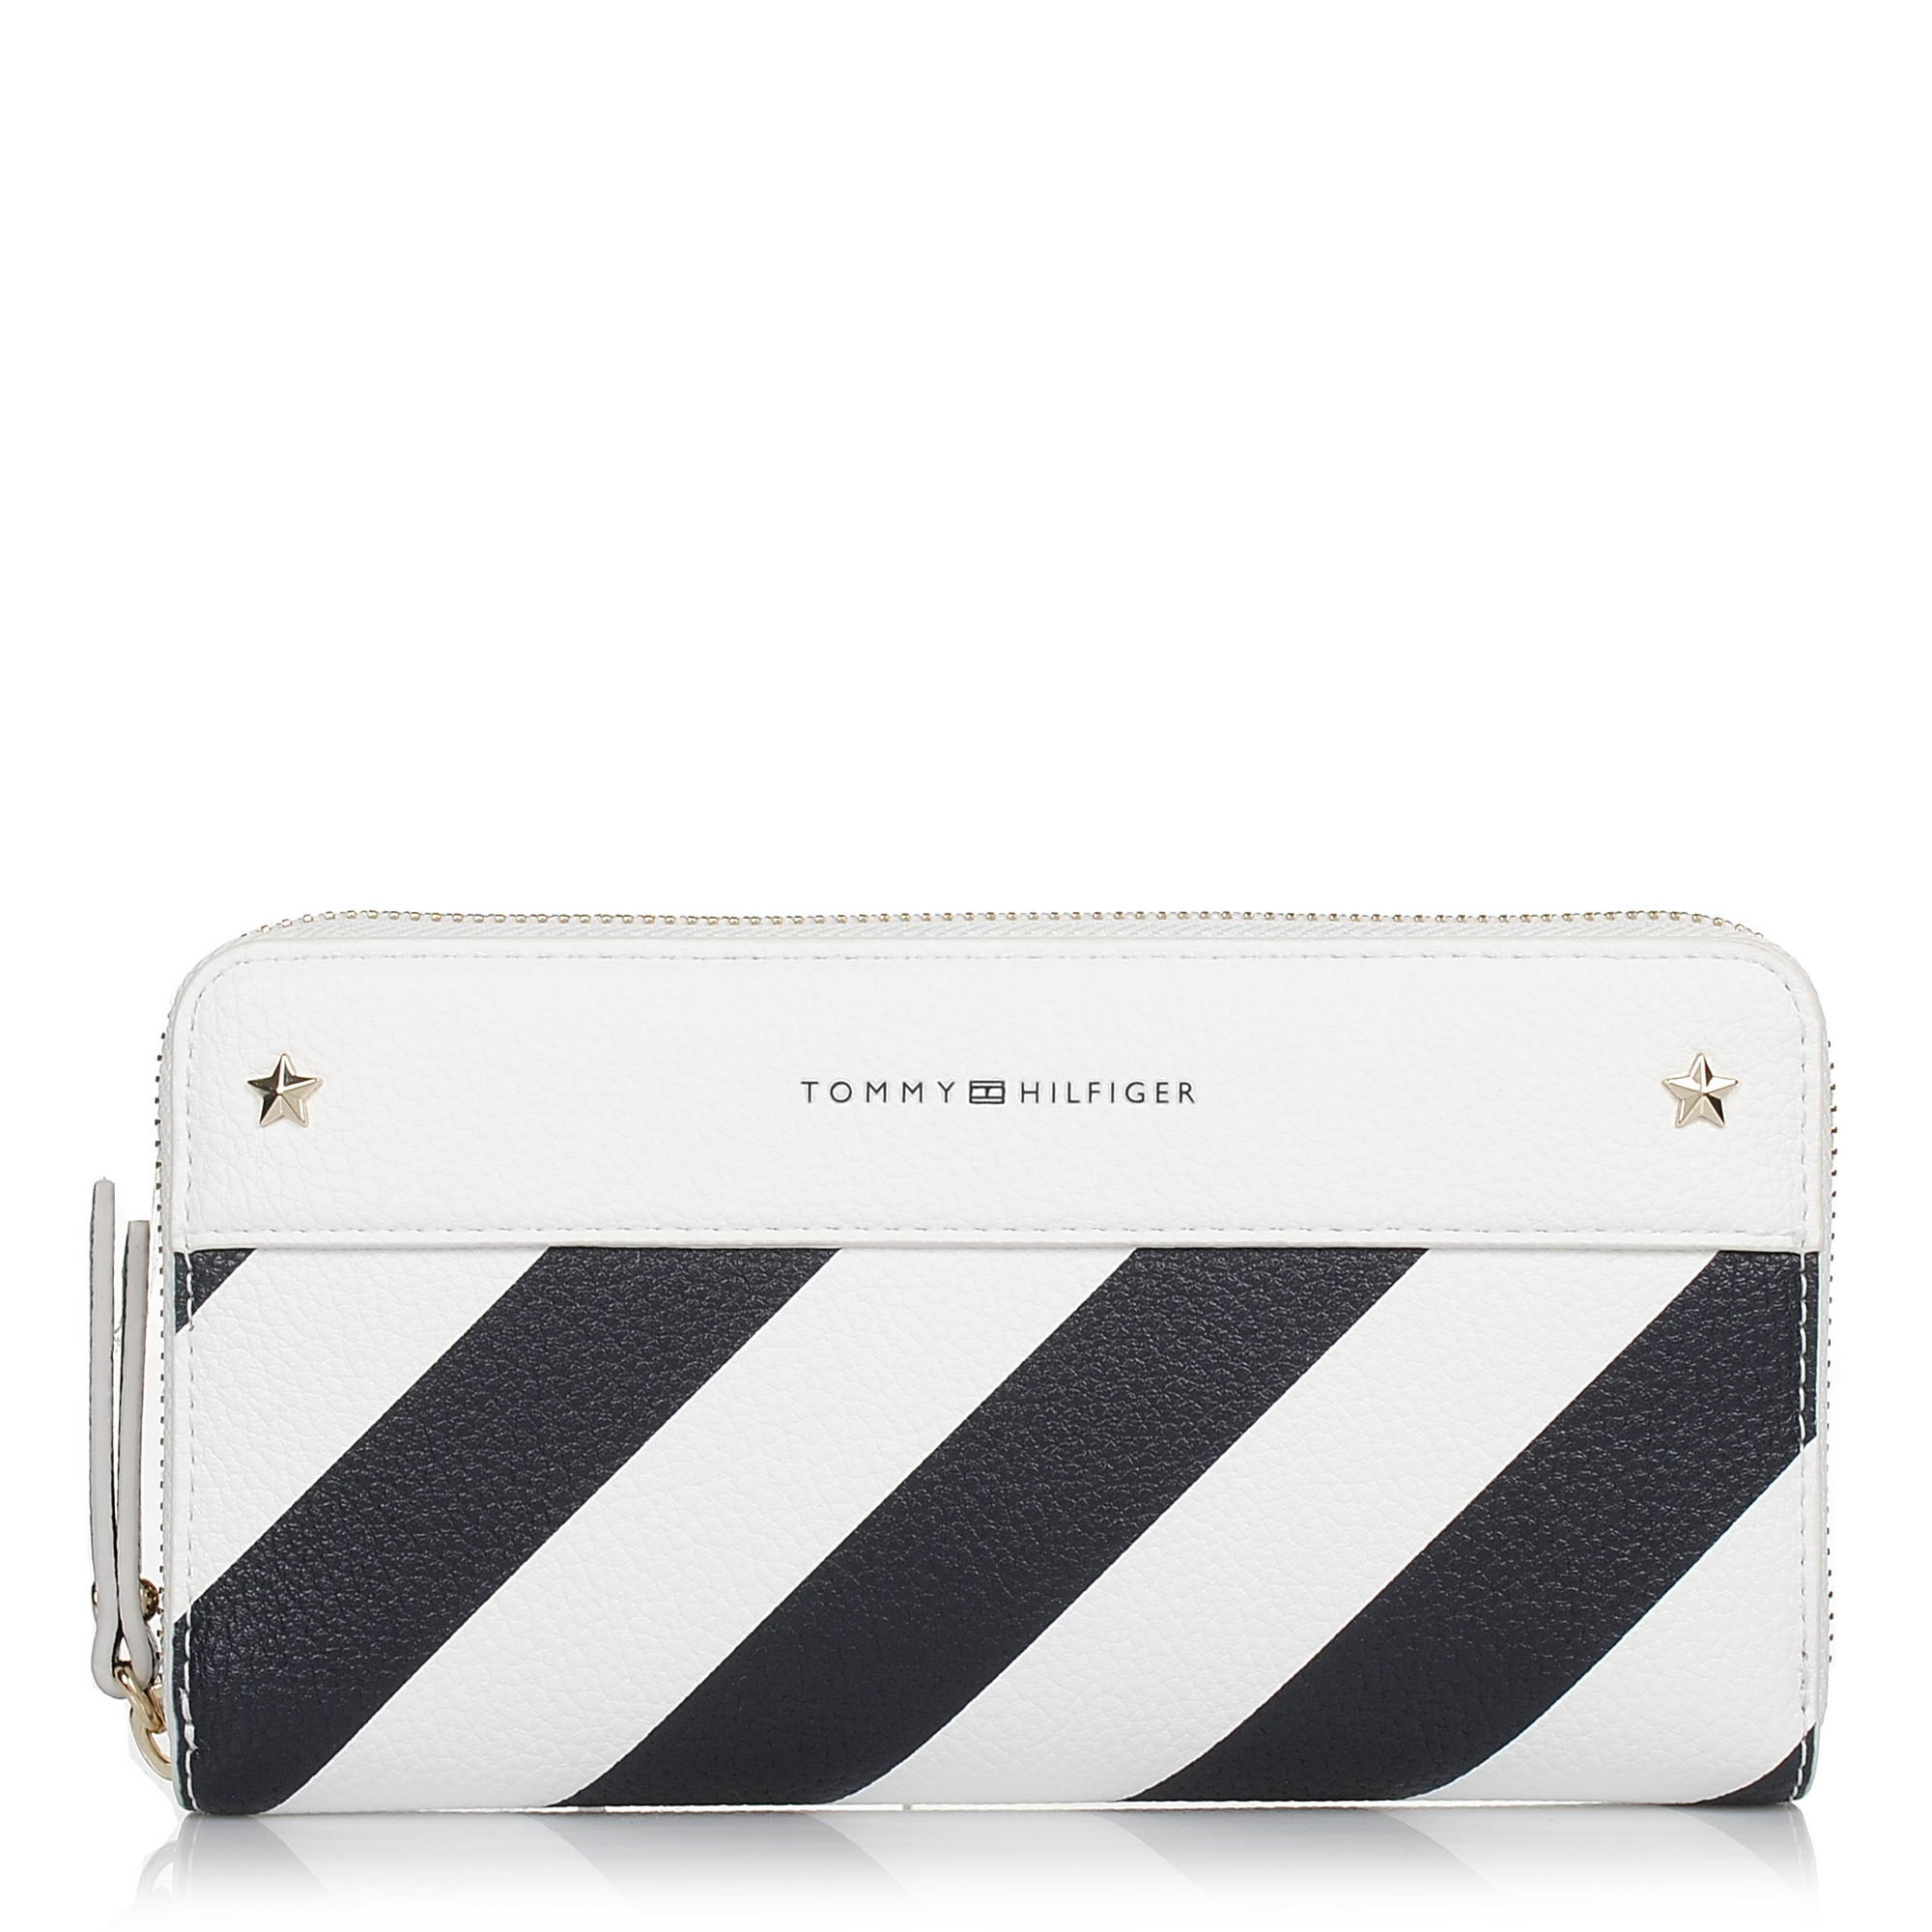 Πορτοφόλι Κασετίνα Tommy Hilfiger Cool Hardware ZA Wallet Stripe AW0AW05301